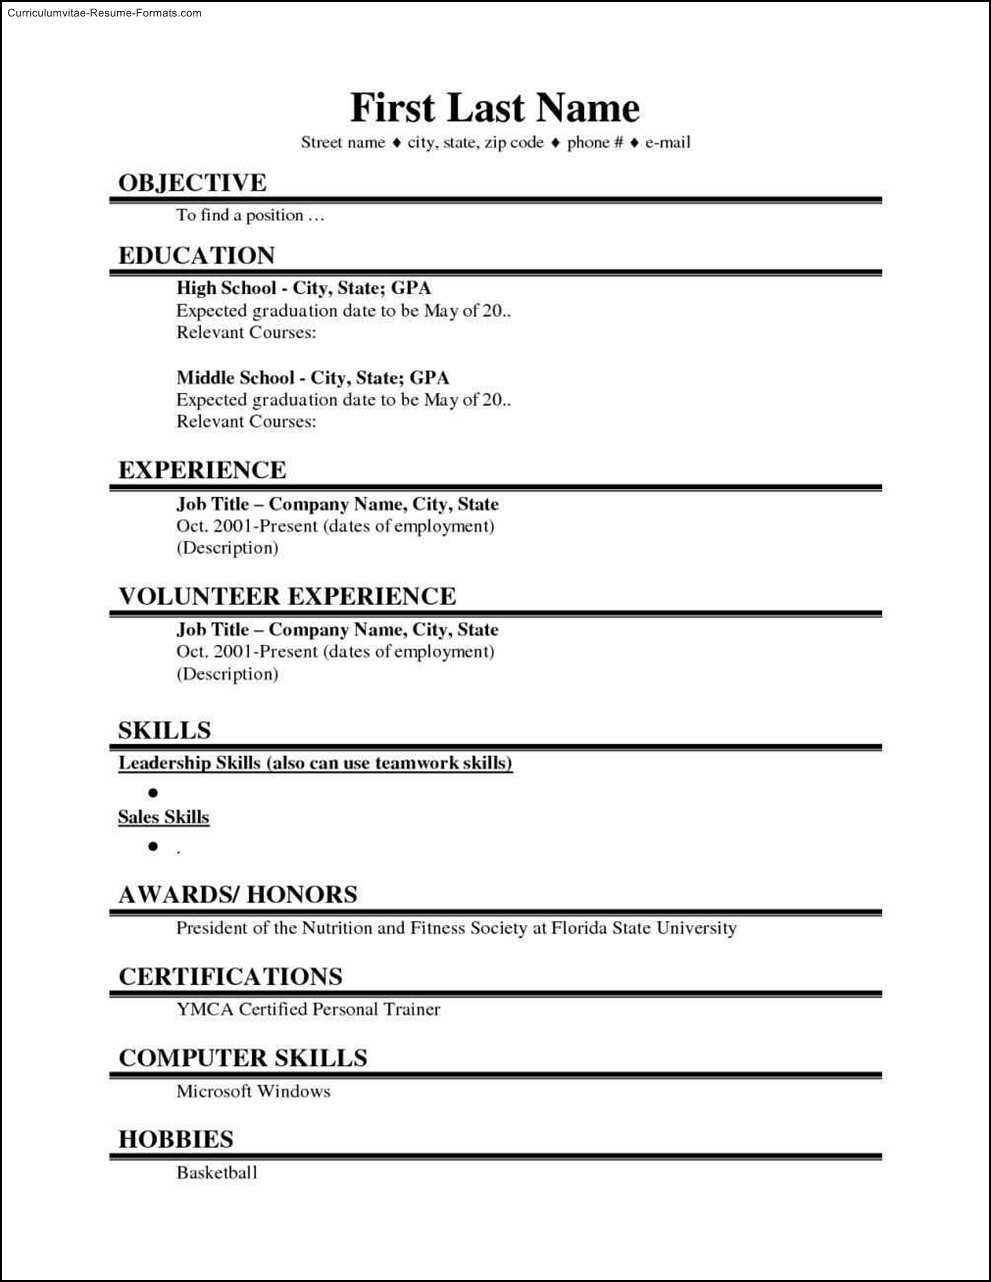 001 College Student Resume Template Microsoft Word Free Regarding College Student Resume Template Microsoft Word